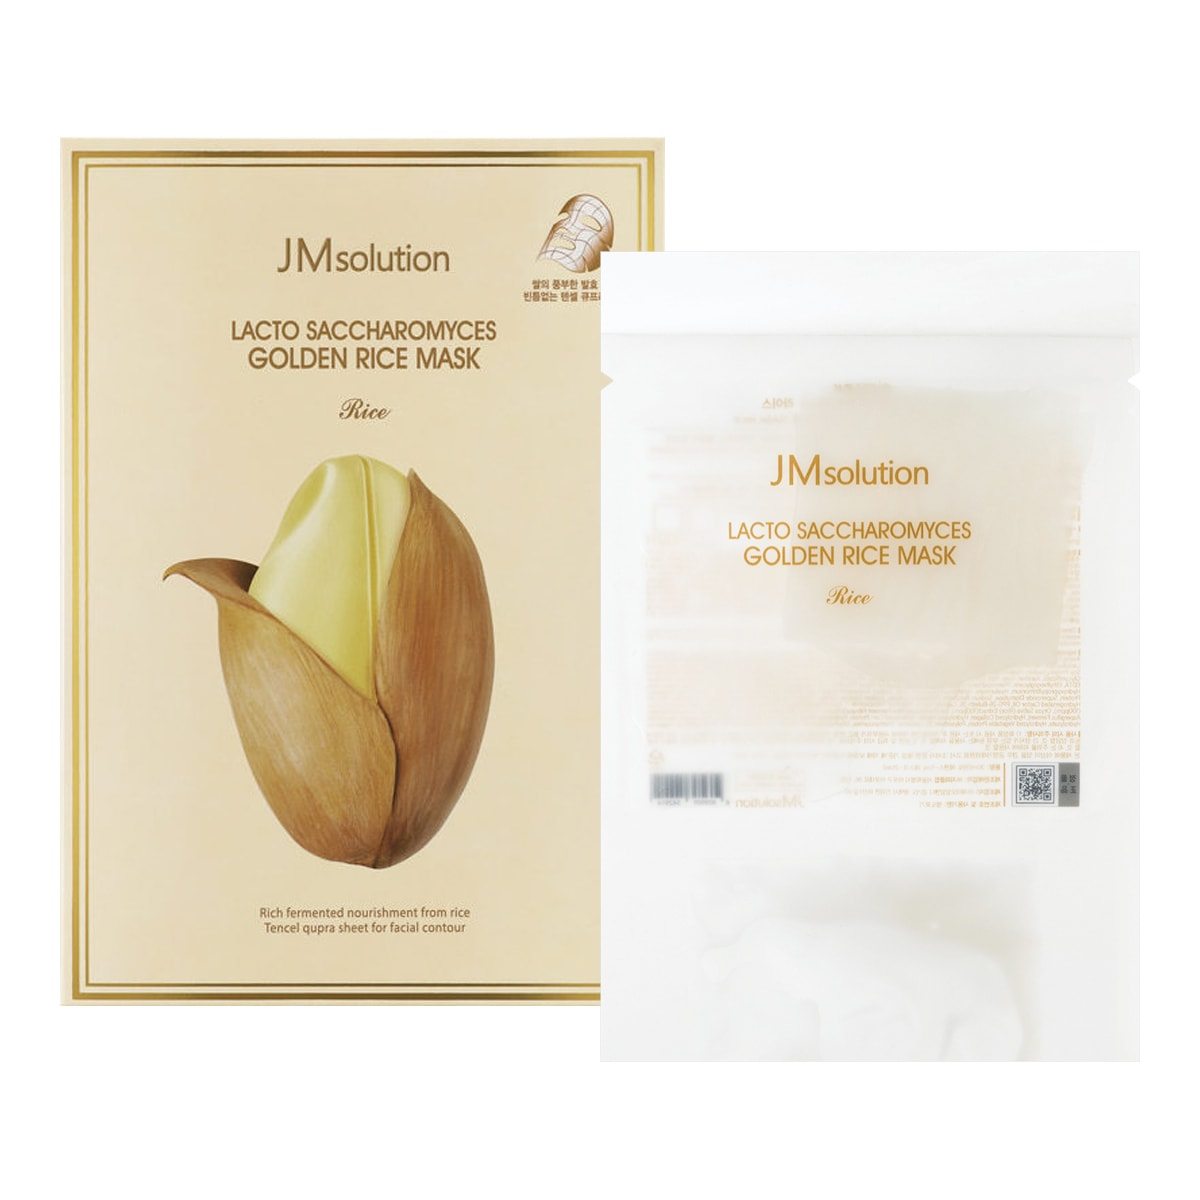 Yamibuy.com:Customer reviews:JM solution Lacto Saccharomyces Golden Rice Mask